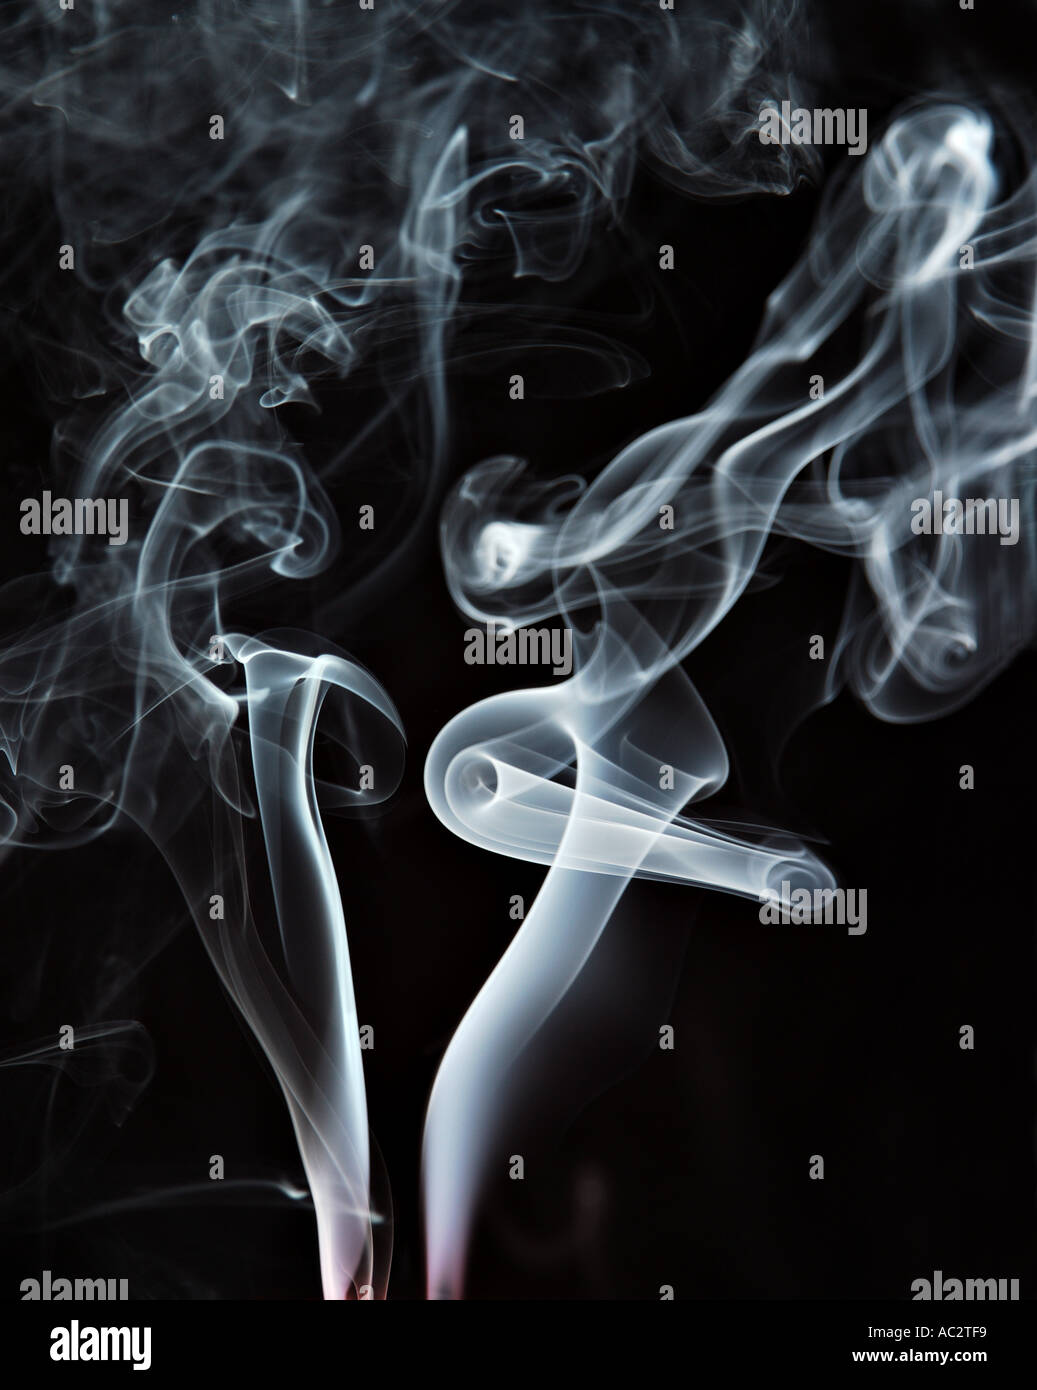 Curling smoke from two extinguished candles on black background - Stock Image